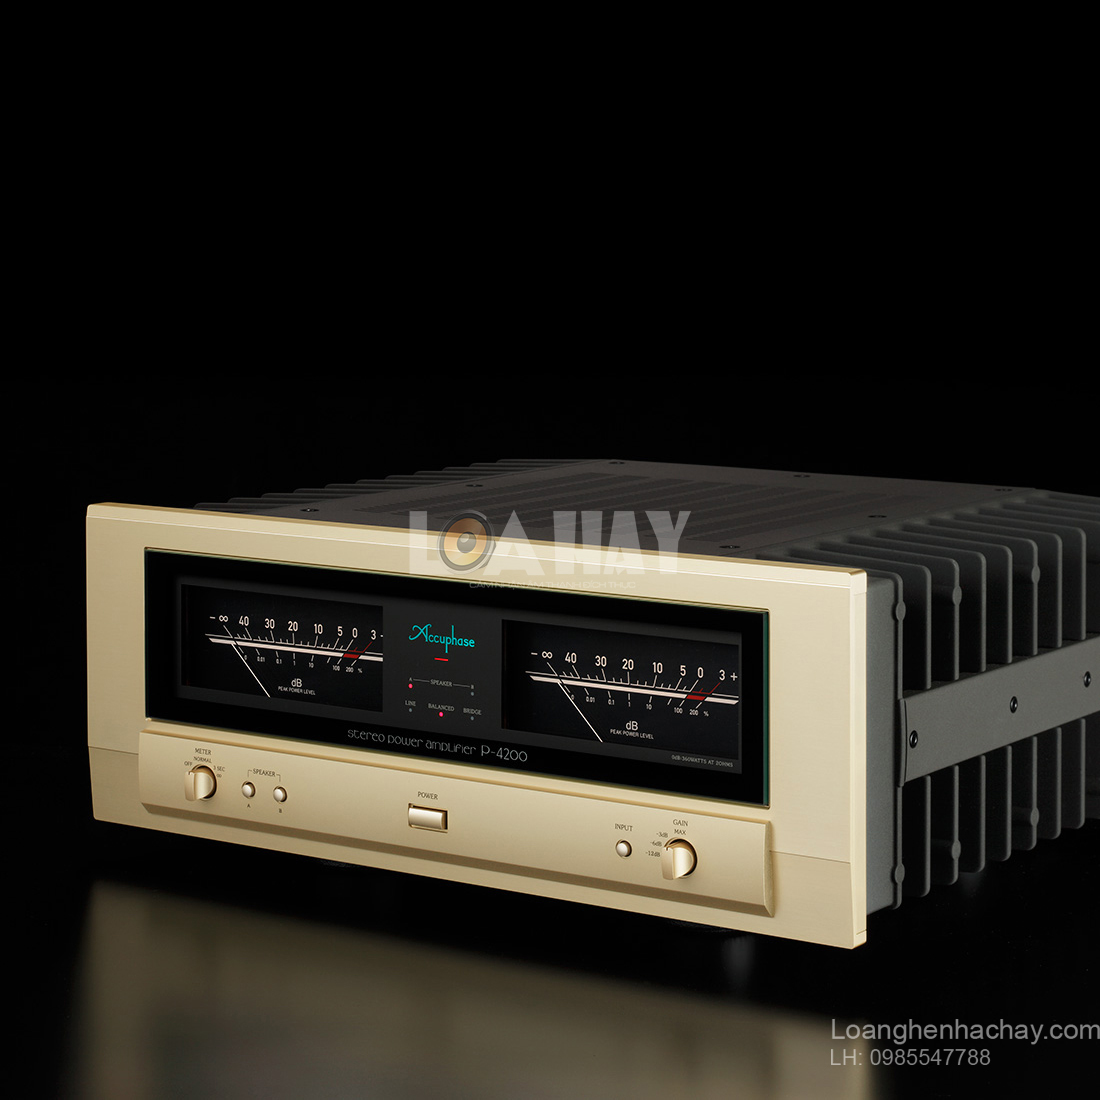 Power ampli Accuphase P-4200 tot loanghenhachay